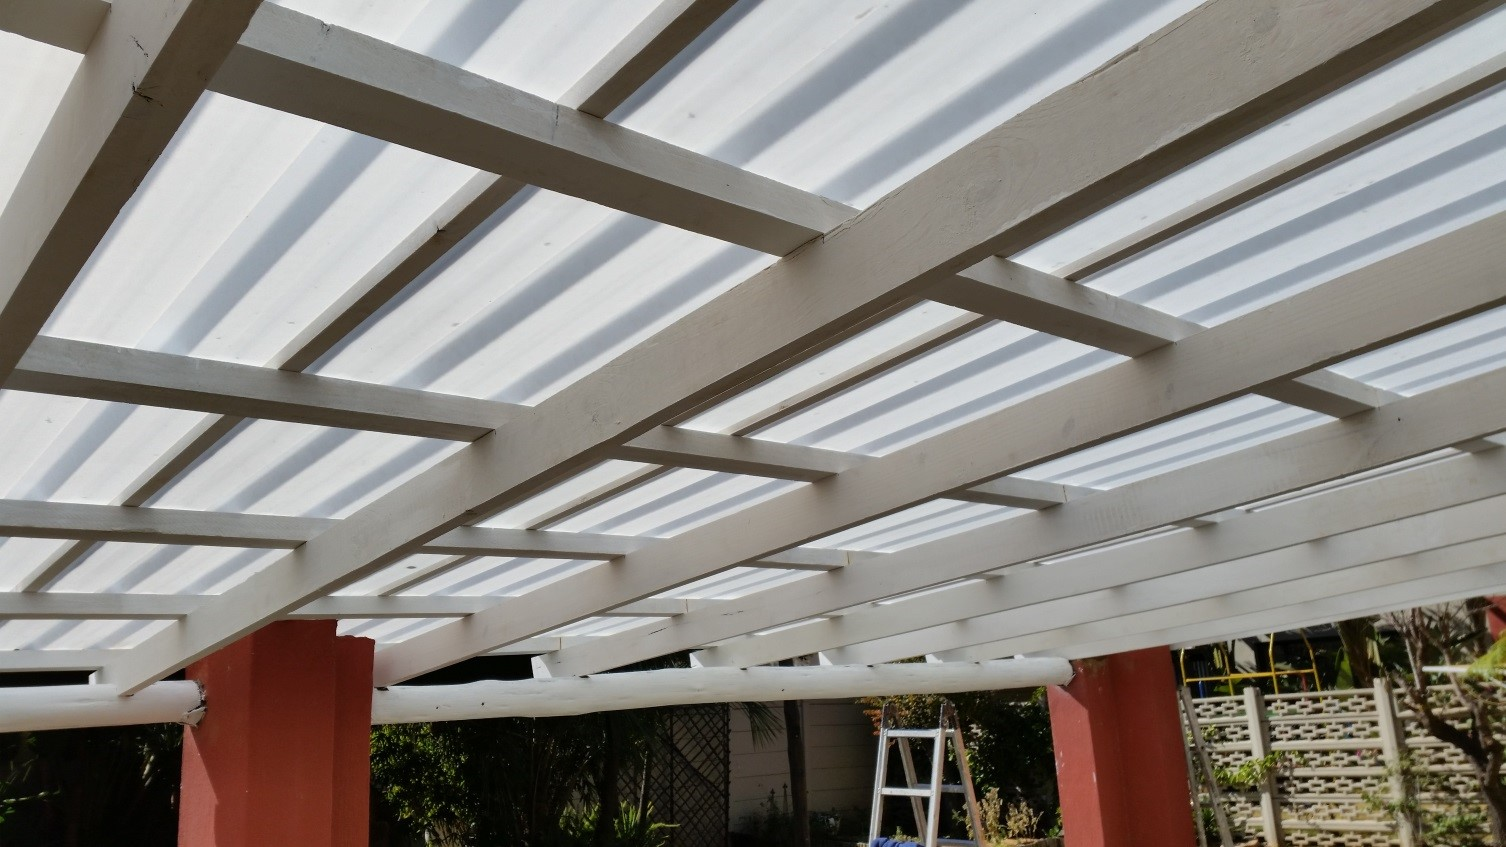 White IBR polycarbonate sheeting used for a Patio